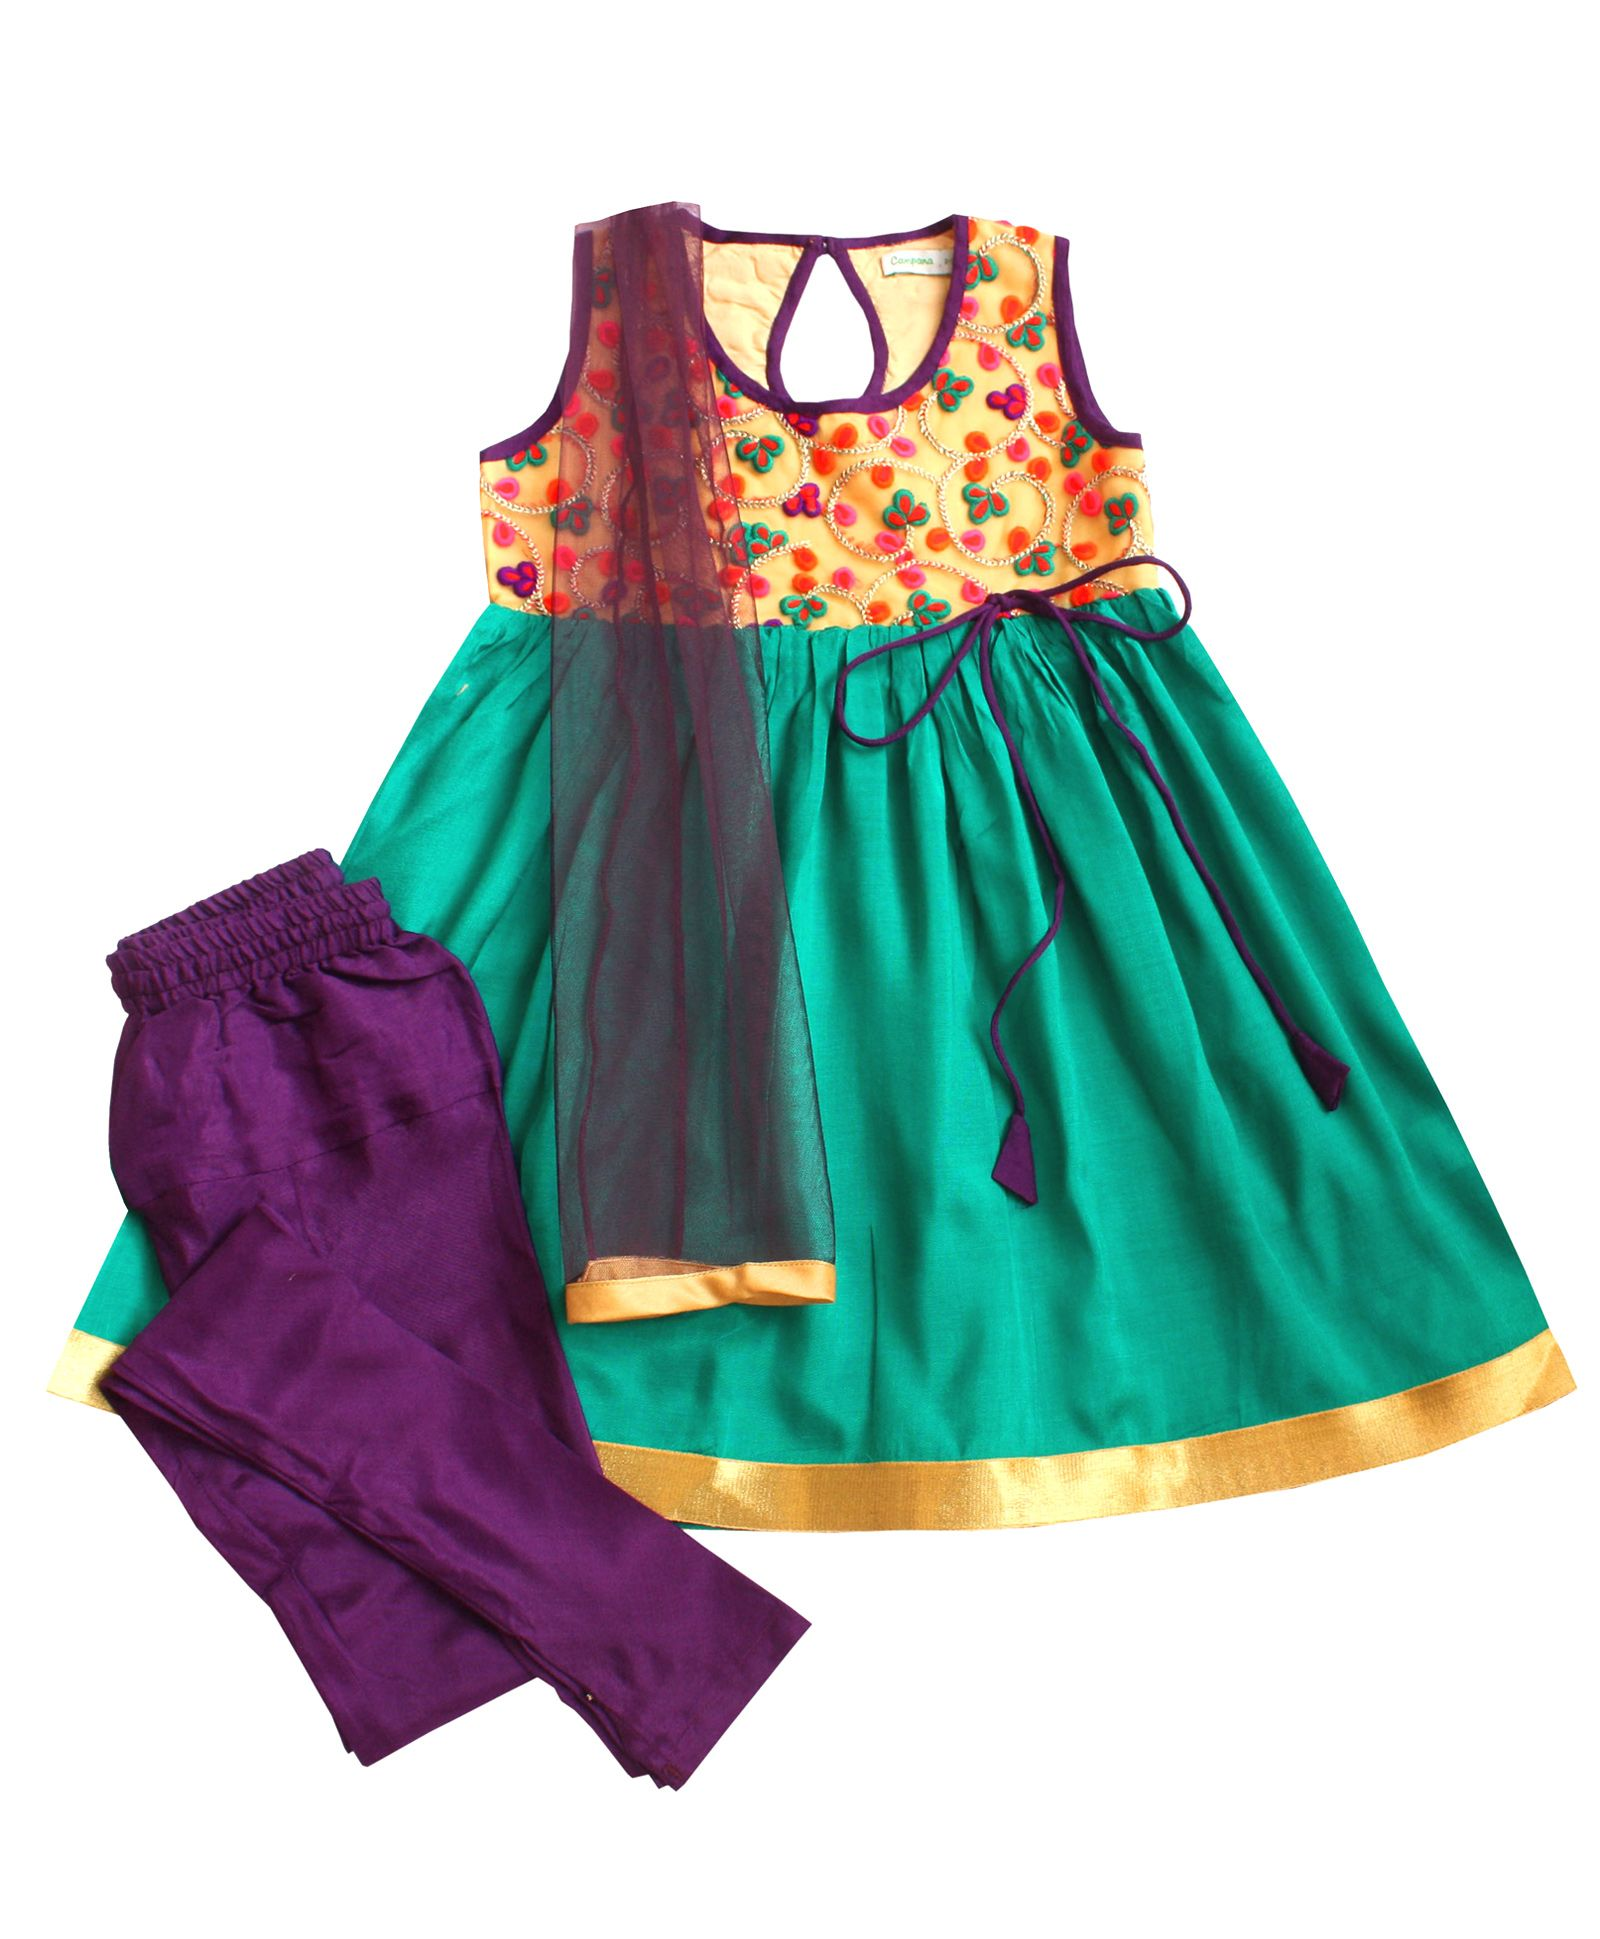 Bring Out Their Ethnic Wear By Firstcry | Campana Sleeveless Floral Embroidered Kurti Churidar & Dupatta Set - Green And Purple @ Rs.1,795.50